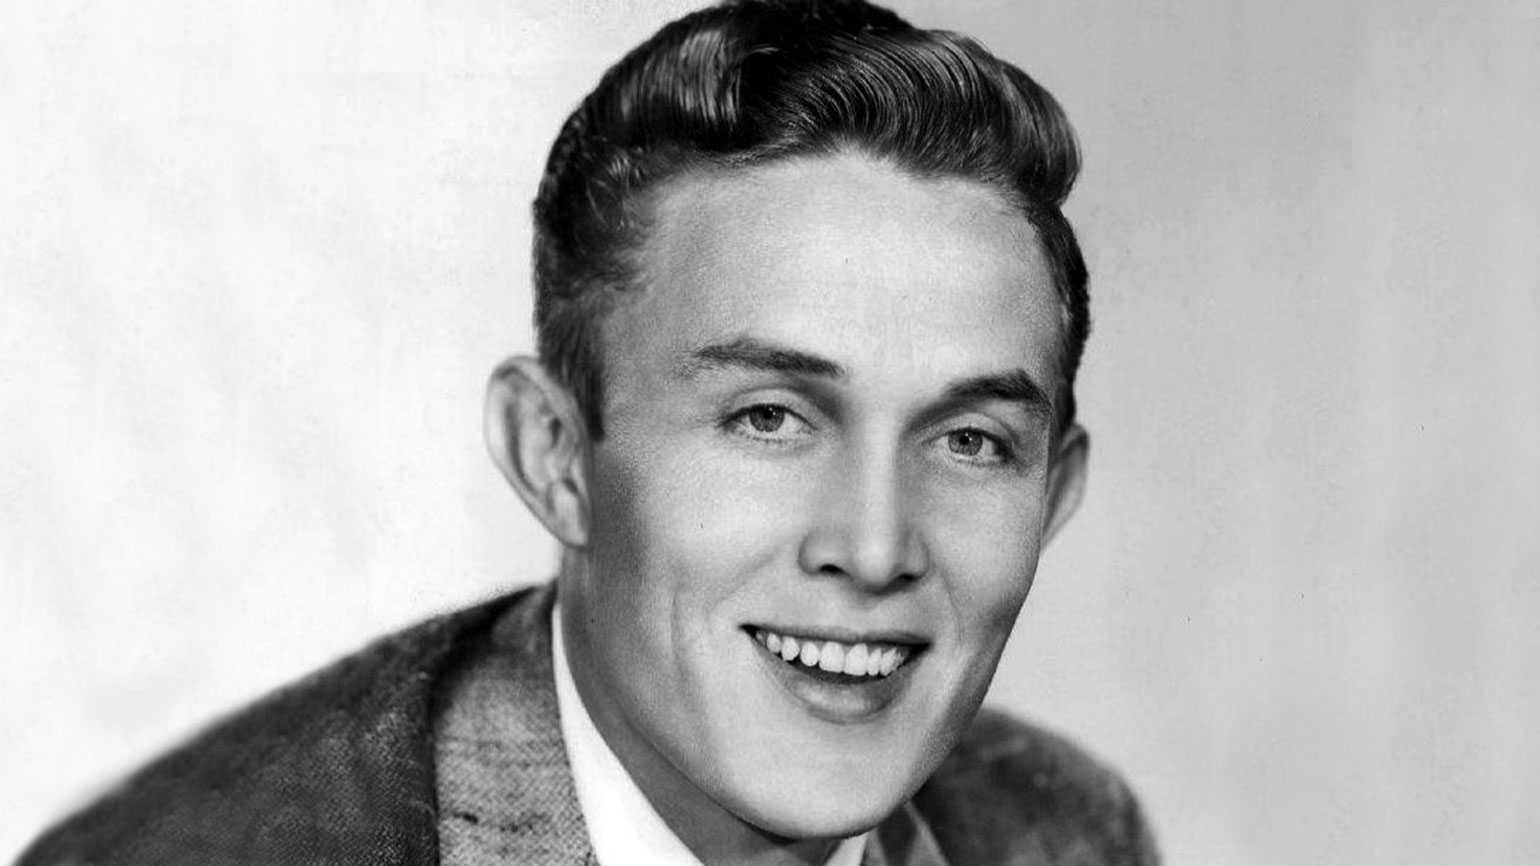 TV and recording star Jimmy Dean